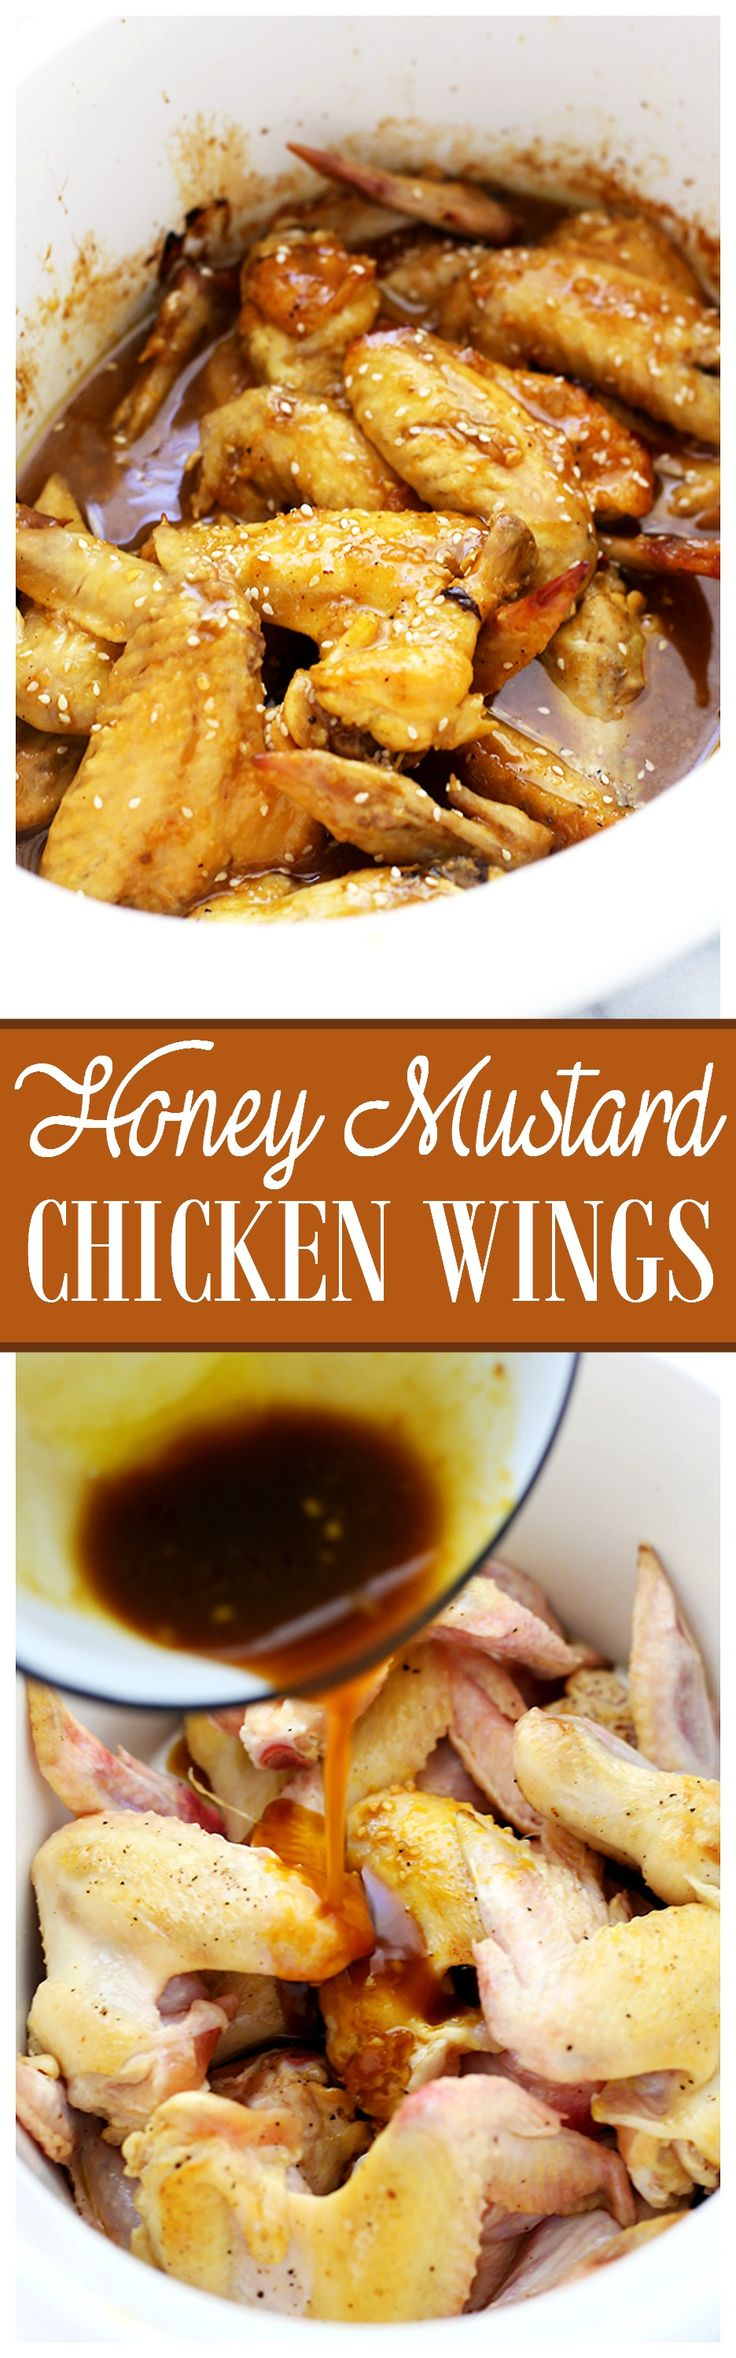 Crock Pot Honey Mustard Chicken Wings | www.diethood.com | The classic, delicious sweet-tangy duo of honey and mustard combined with chicken wings and prepared in the crock pot. Delicious doesn't even begin to describe this amazingness!